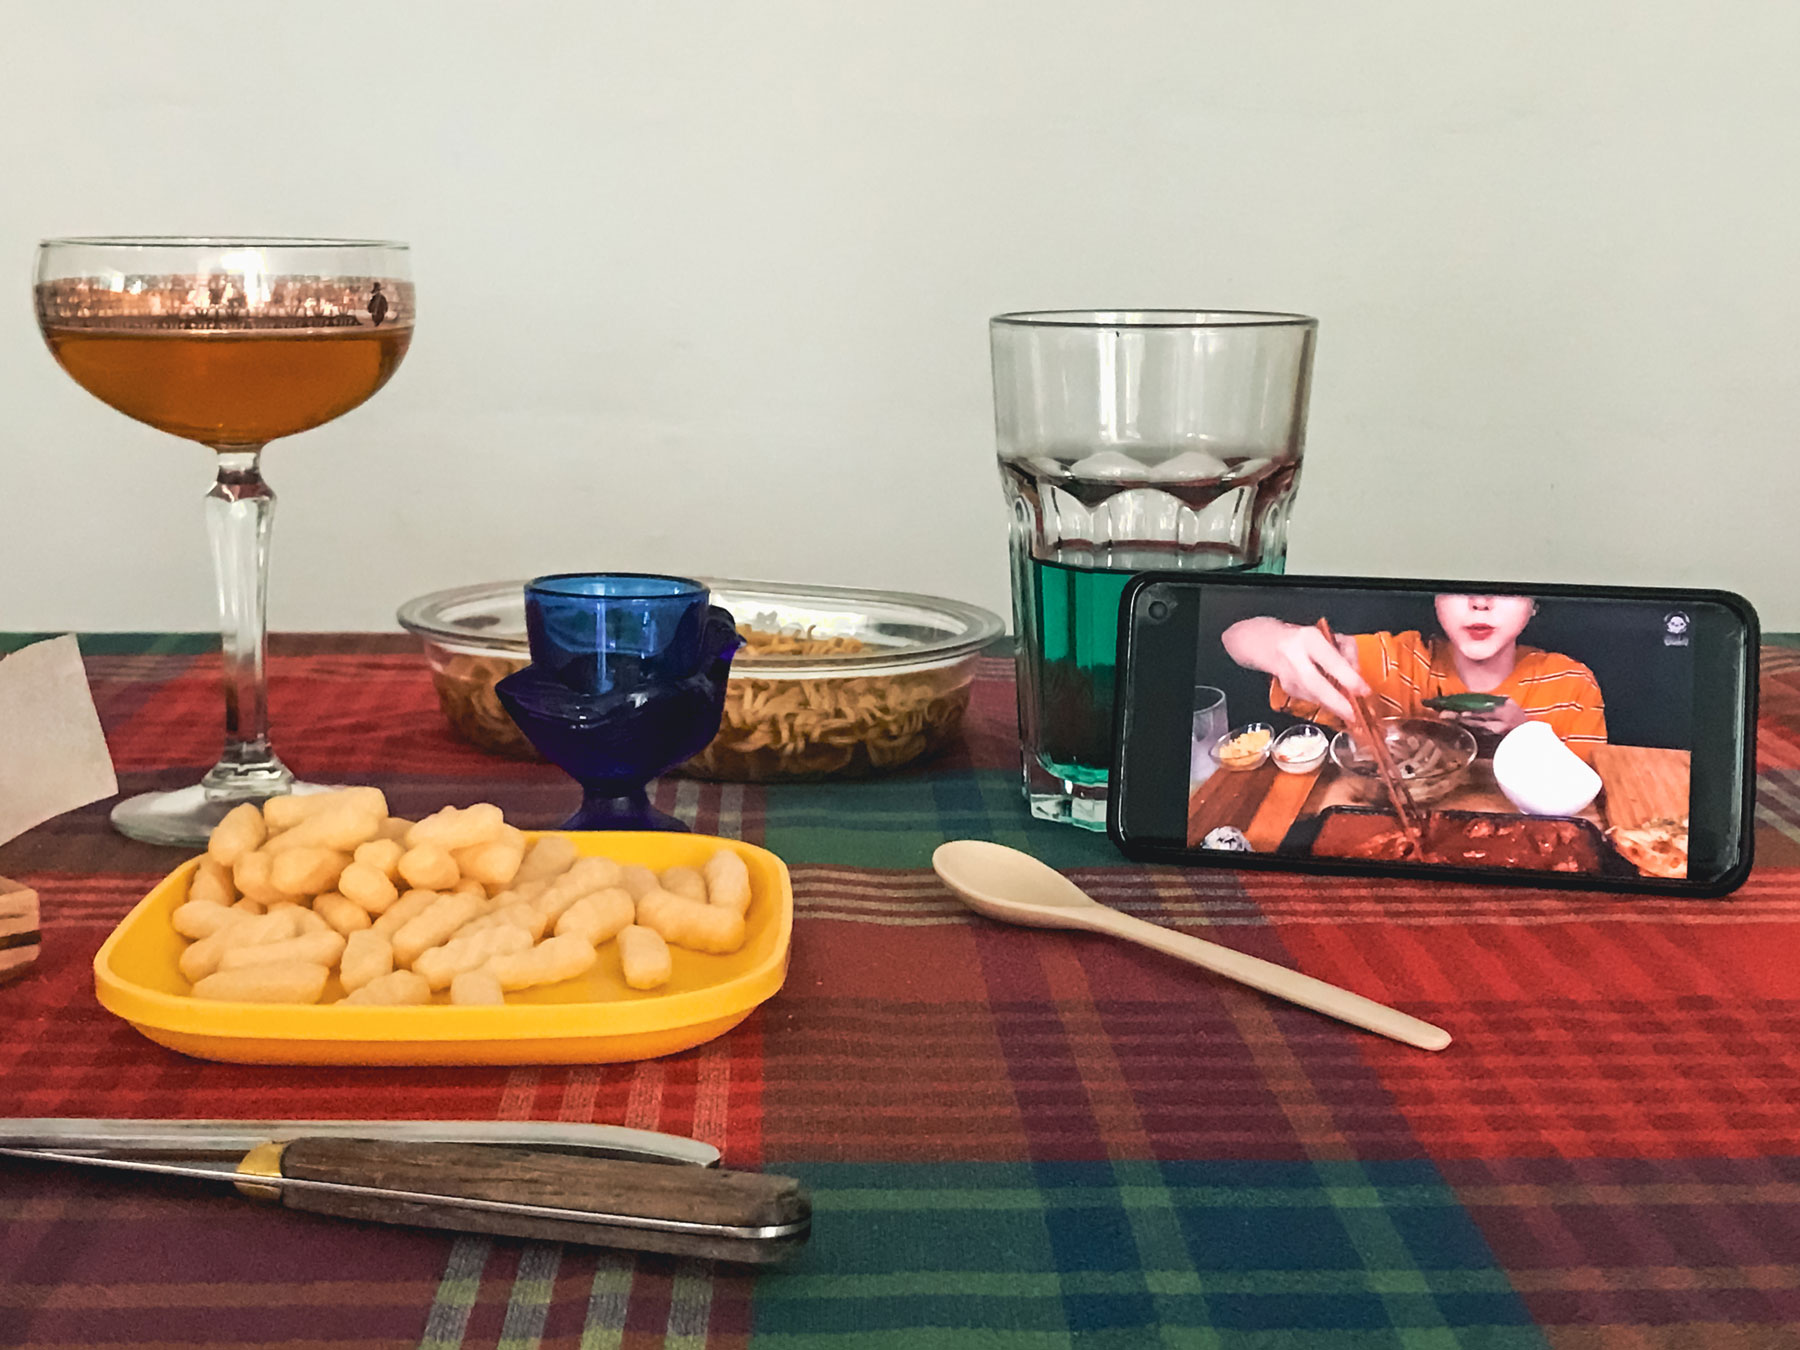 A table set for one with an open smart phone on the table.